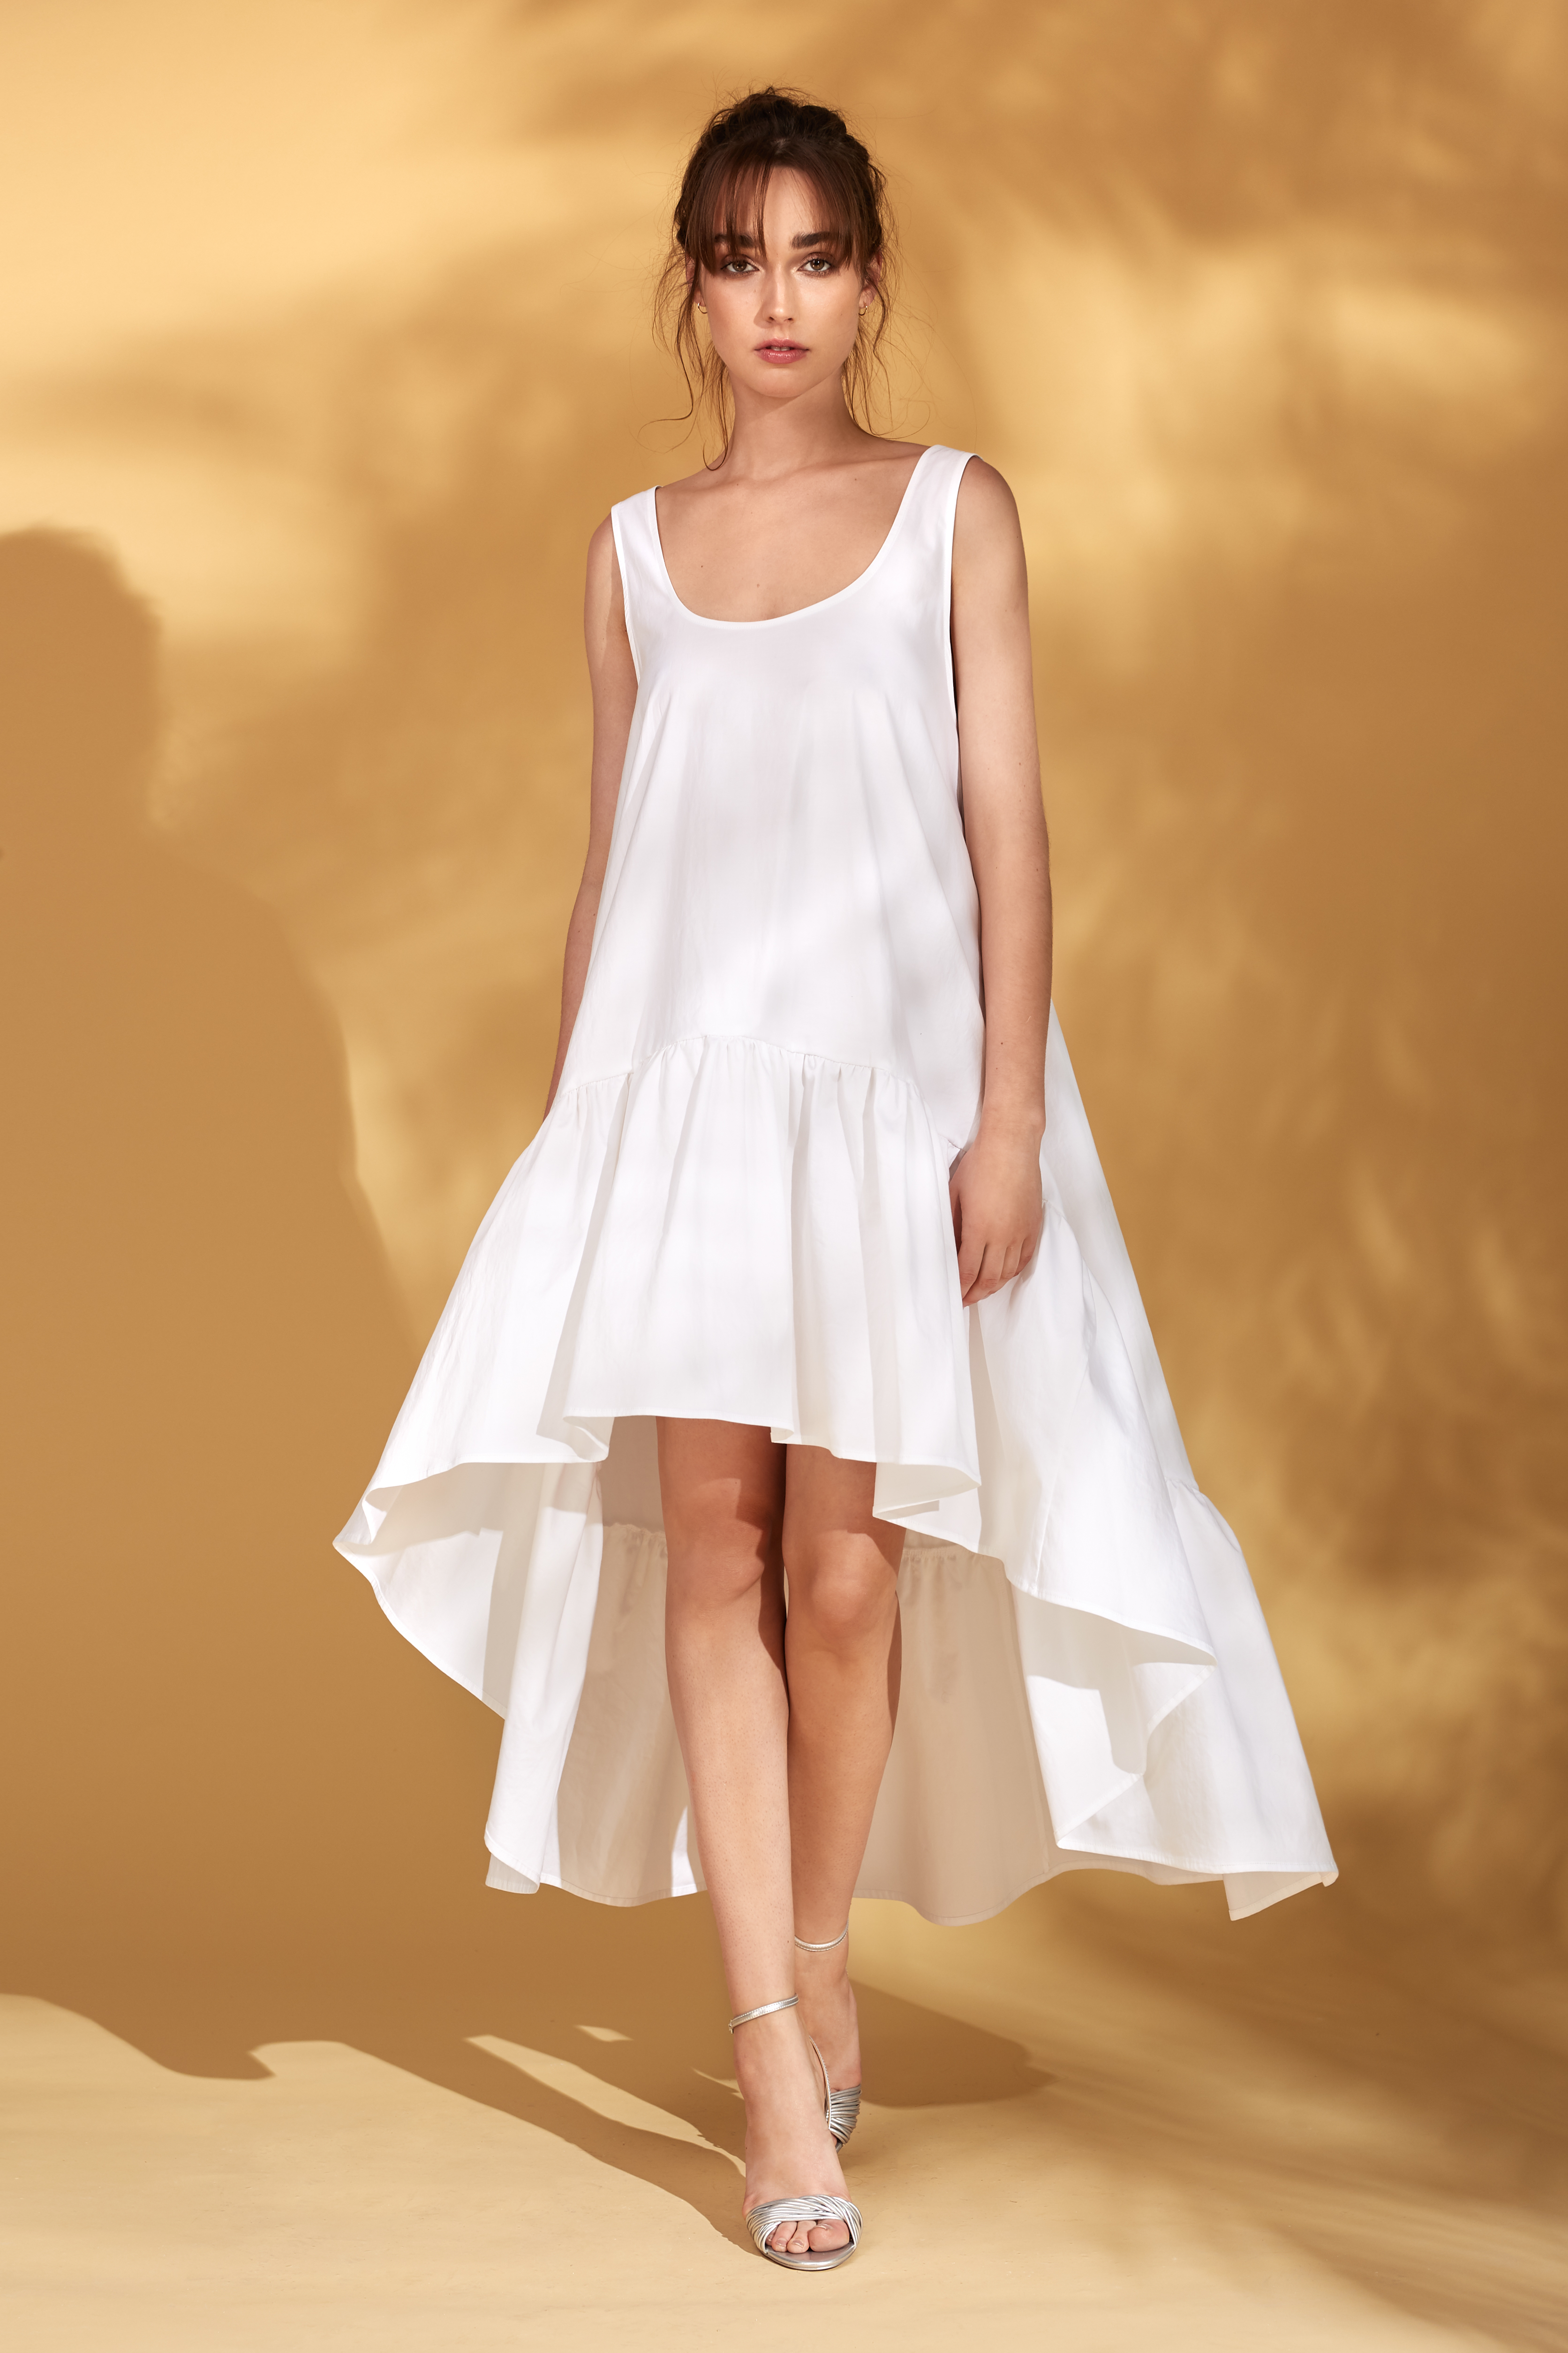 Monica dress by Monica Nera on curated-crowd.com